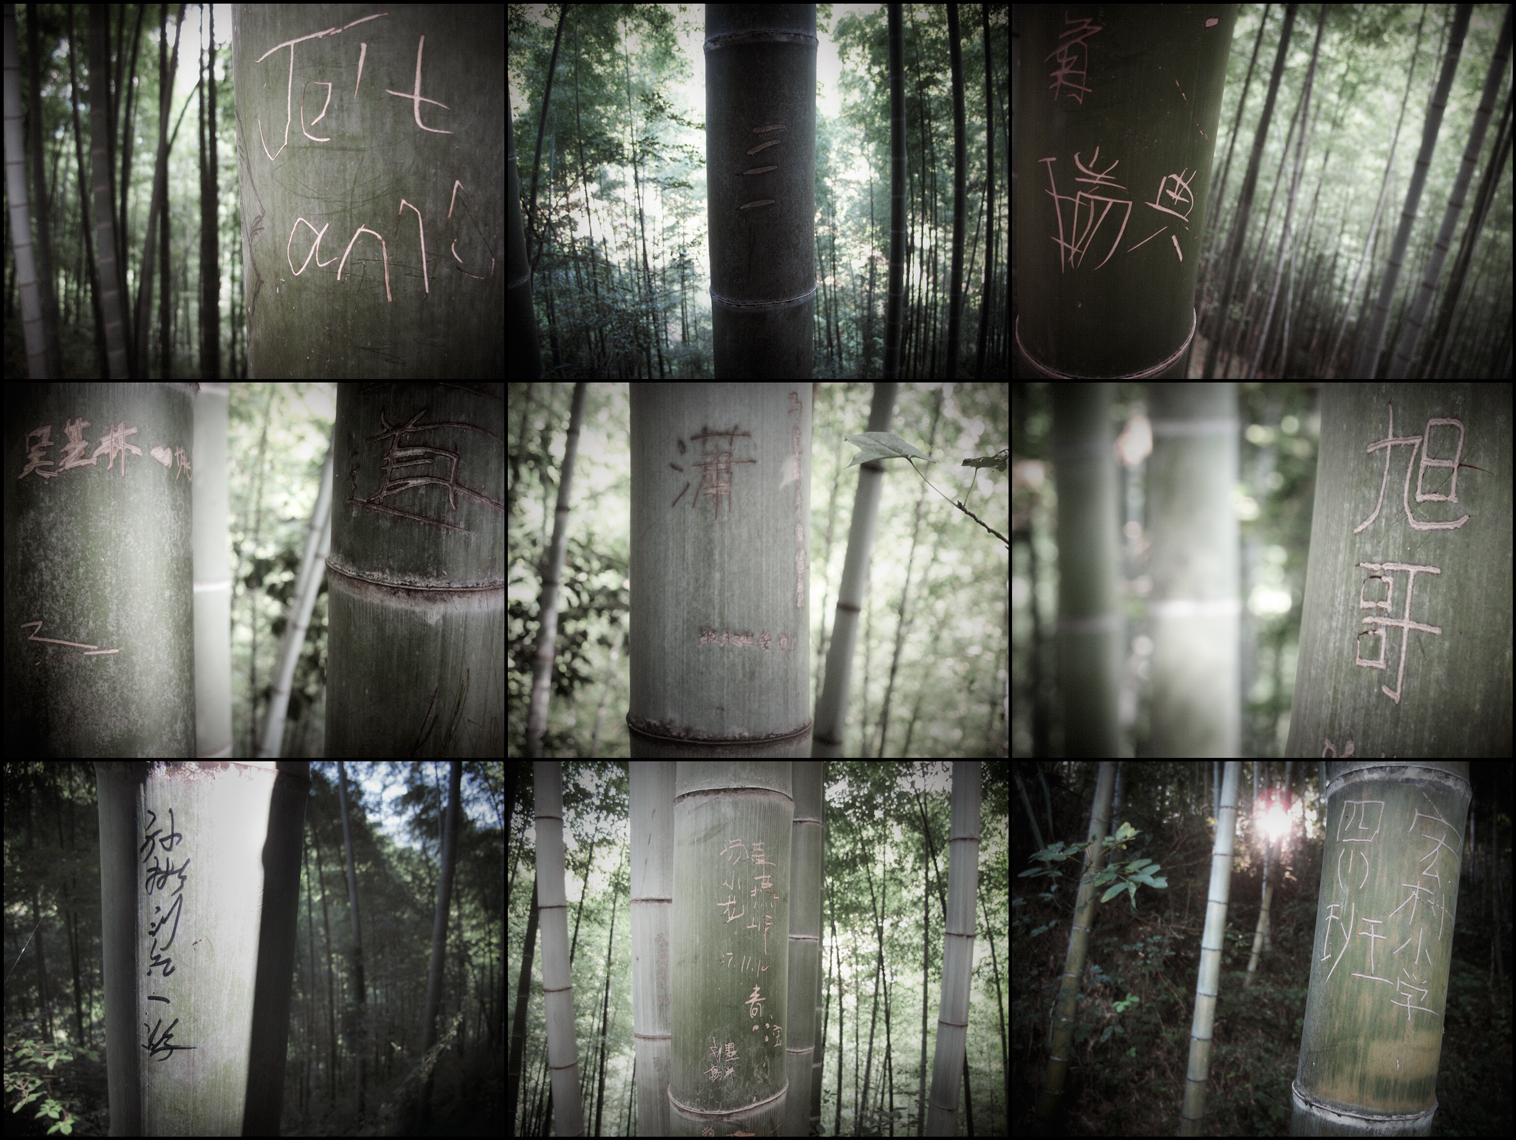 Jon Wyatt Photography - The Lost Library III - Graffiti on bamboo in bamboo forest in China